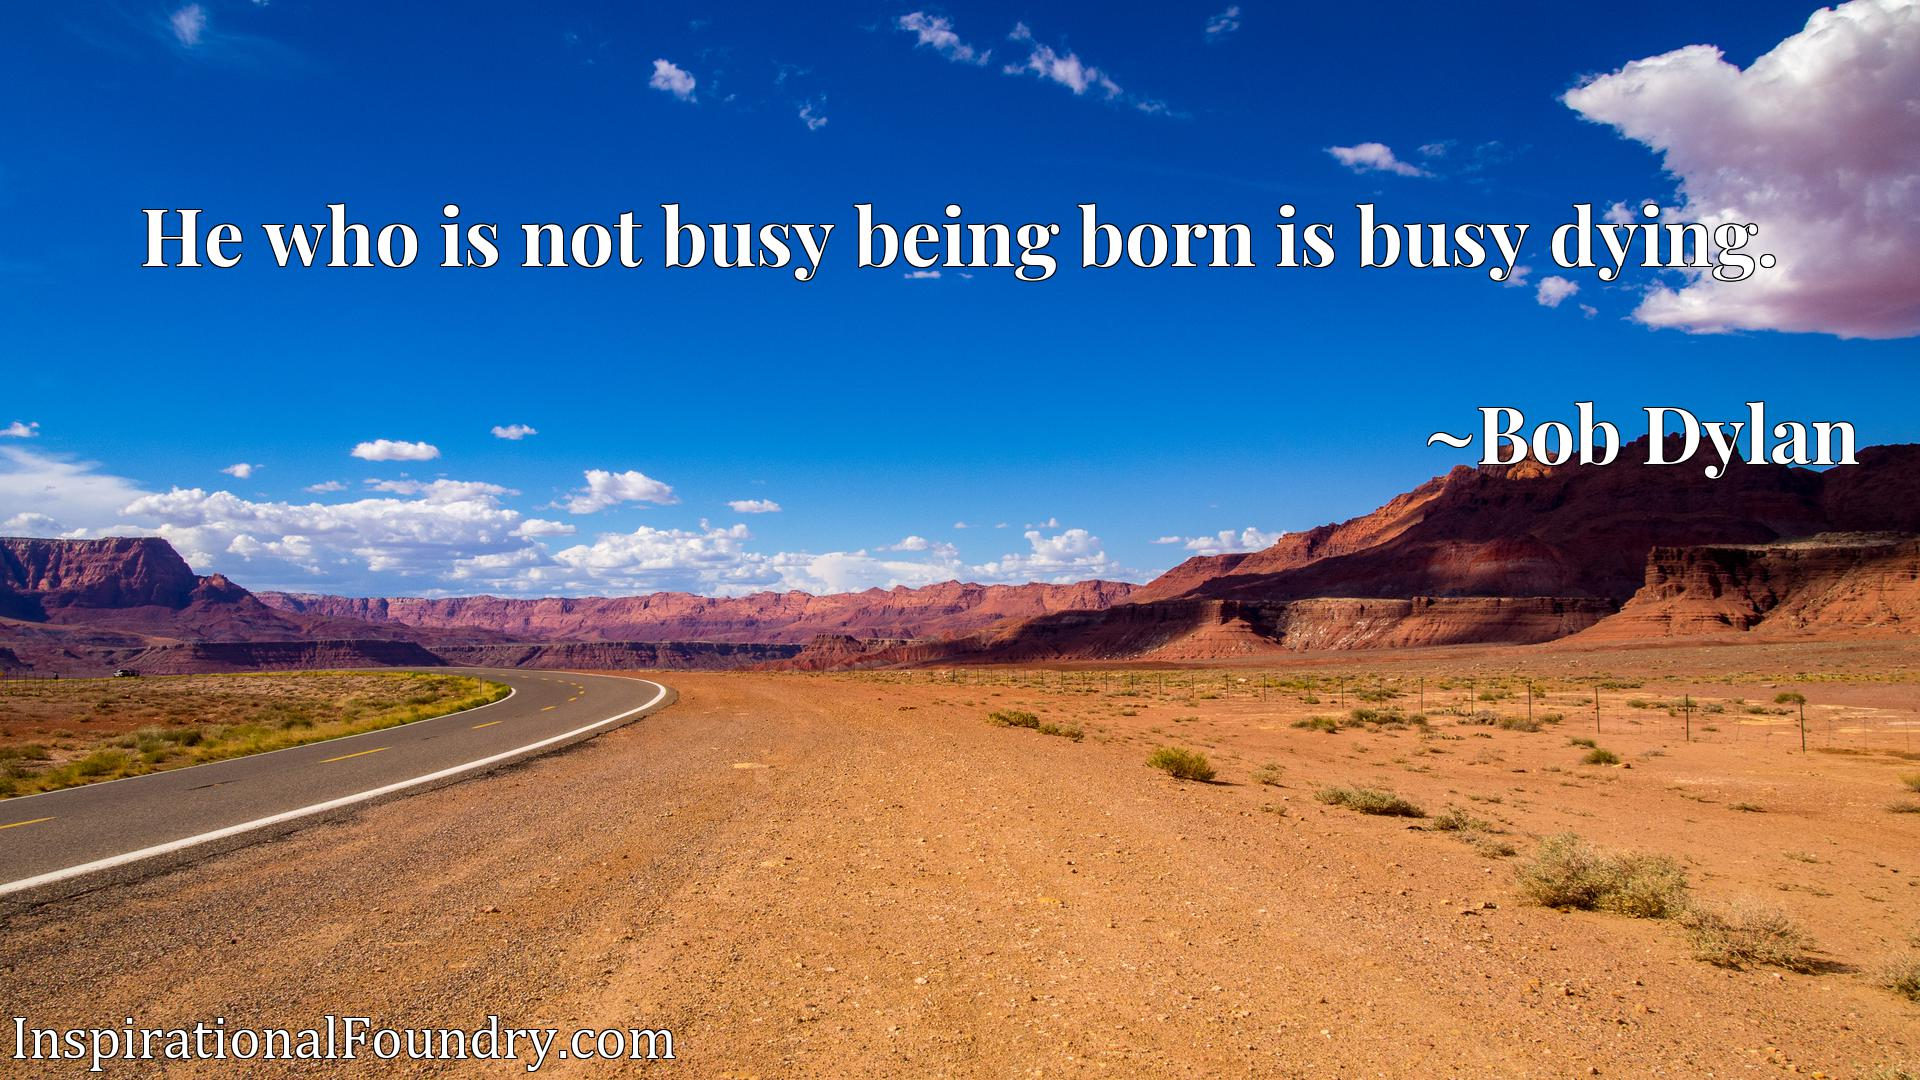 He who is not busy being born is busy dying.